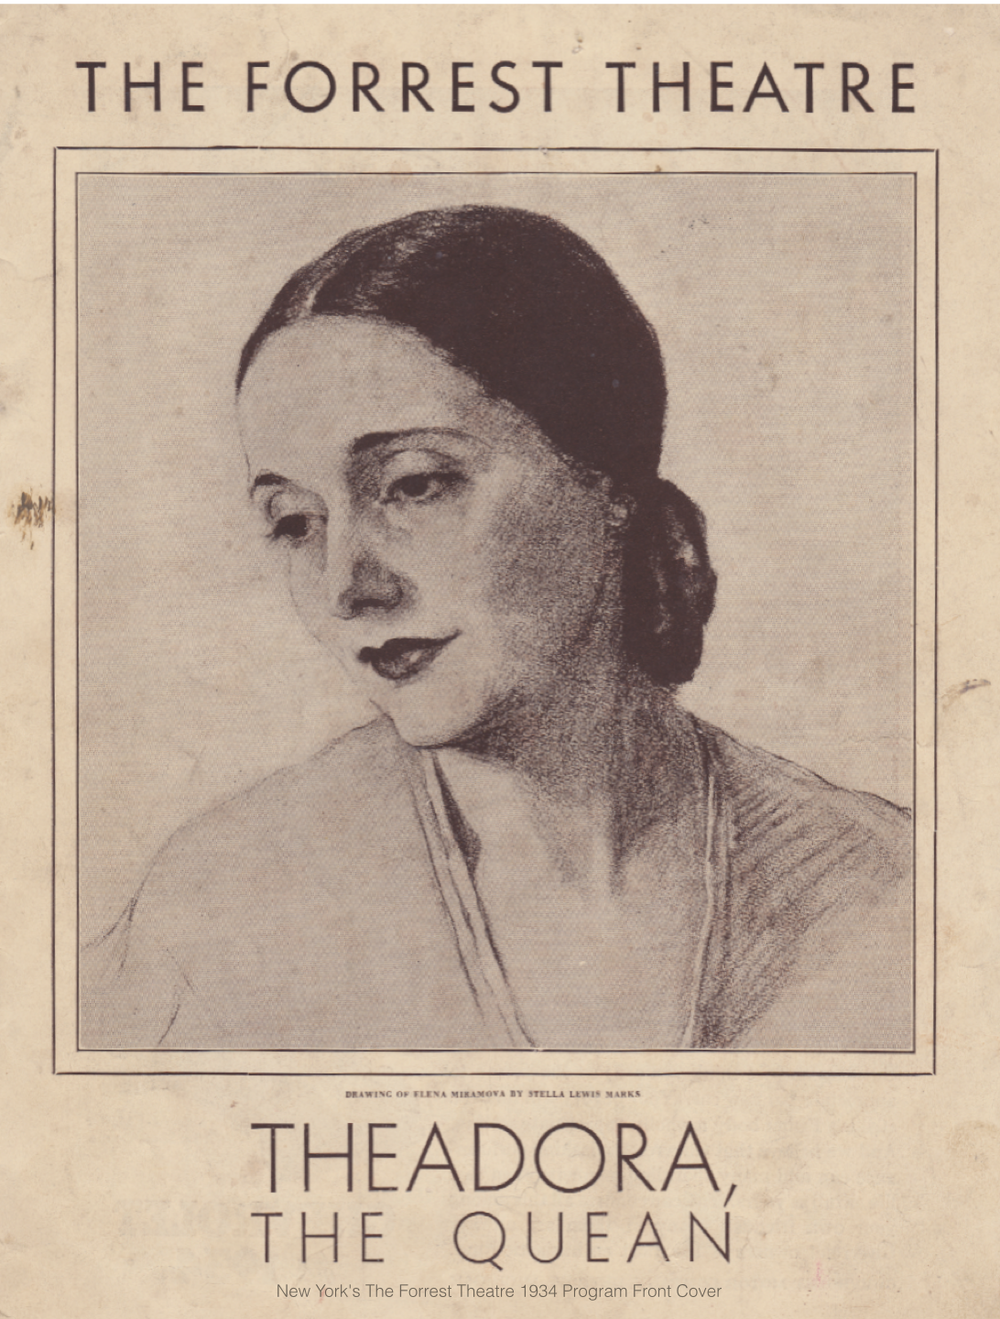 Stellla Marks drawing of Elena Miramova. New York's The Forrest Theatre 1934 production of Theadora, The Quean.